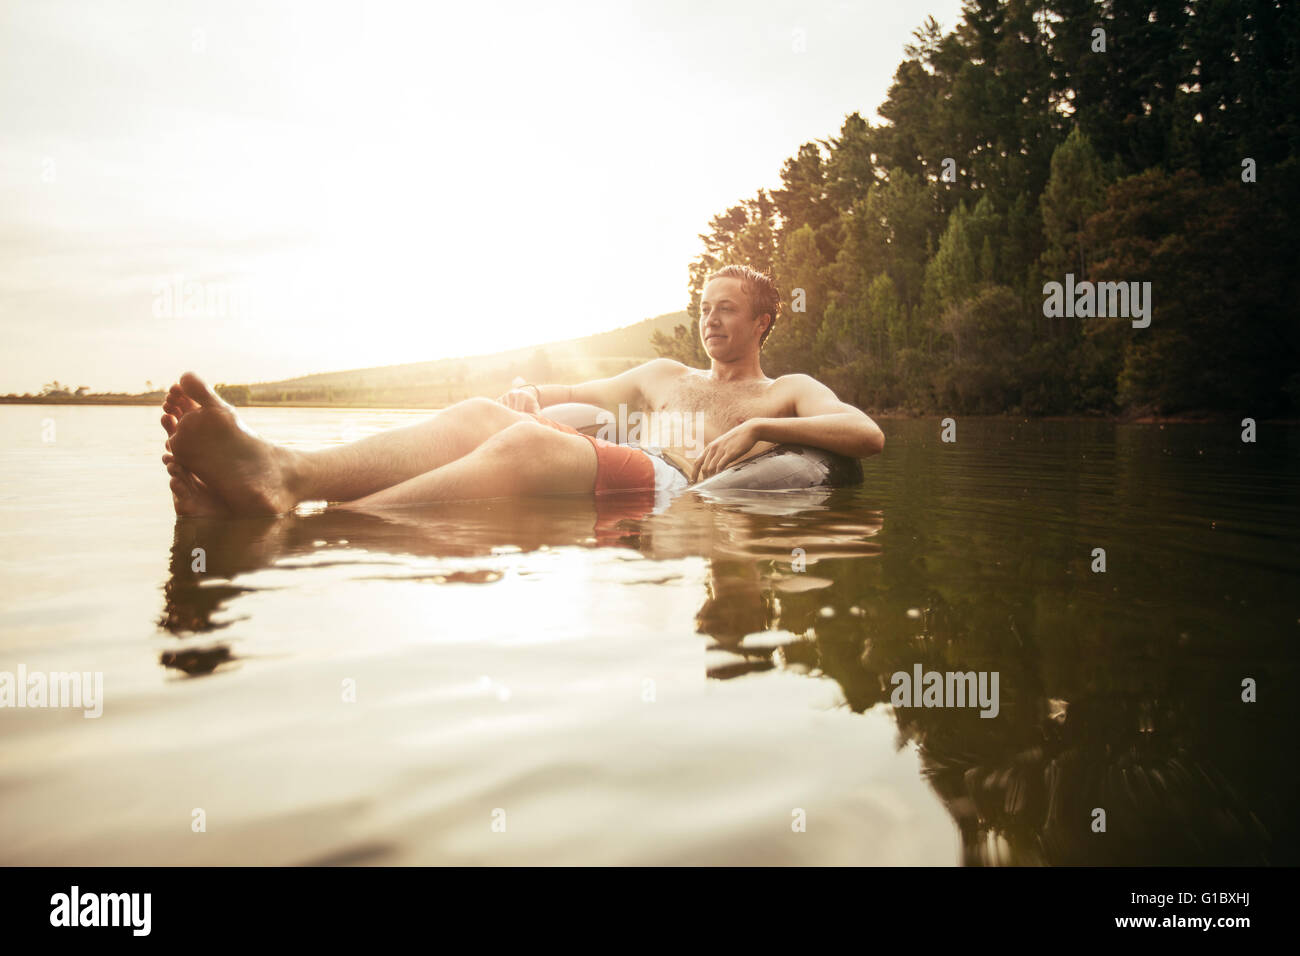 Portrait of young man in lake on inflatable ring. Man relaxing in water on a summer day. - Stock Image